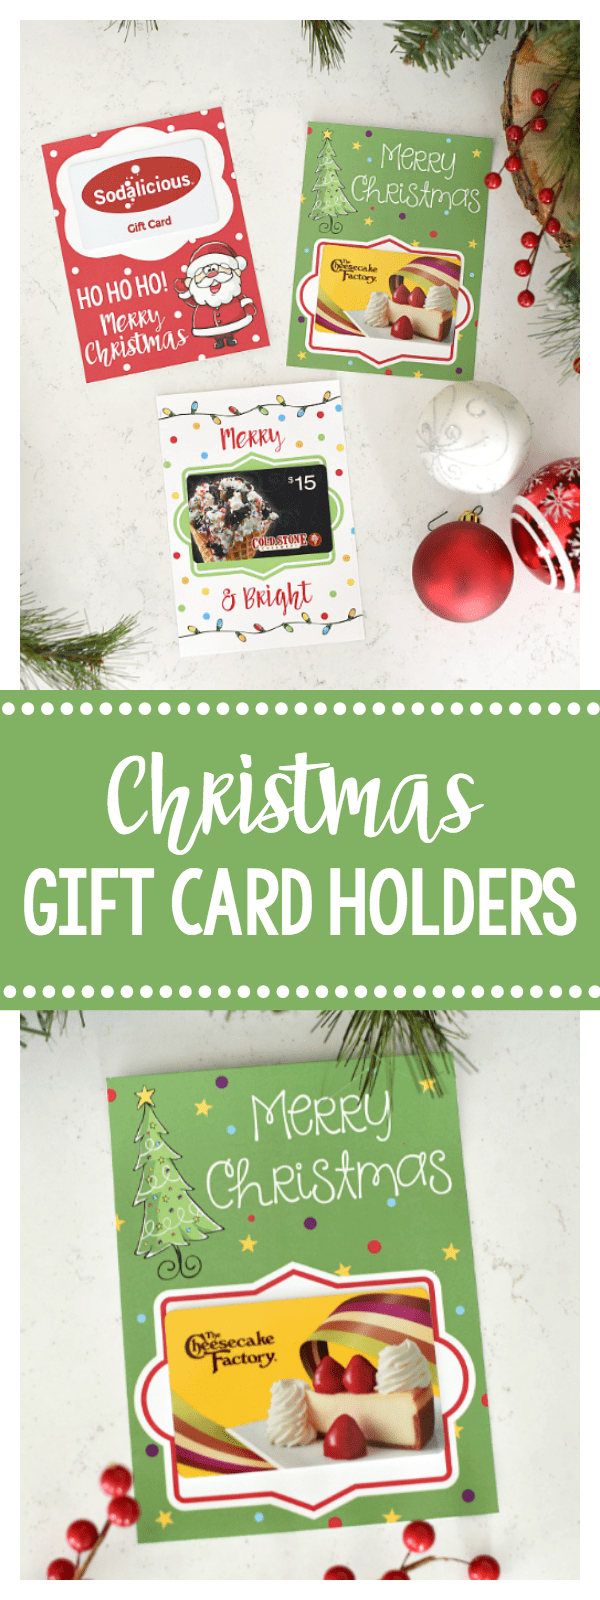 Printable Christmas Gift Card Holders-All you've got to do is add the gift card to these cute printable gift card holders and you've got a great Christmas gift for a friend, teacher or anyone! #christmas #christmasgifts #neighborgifts